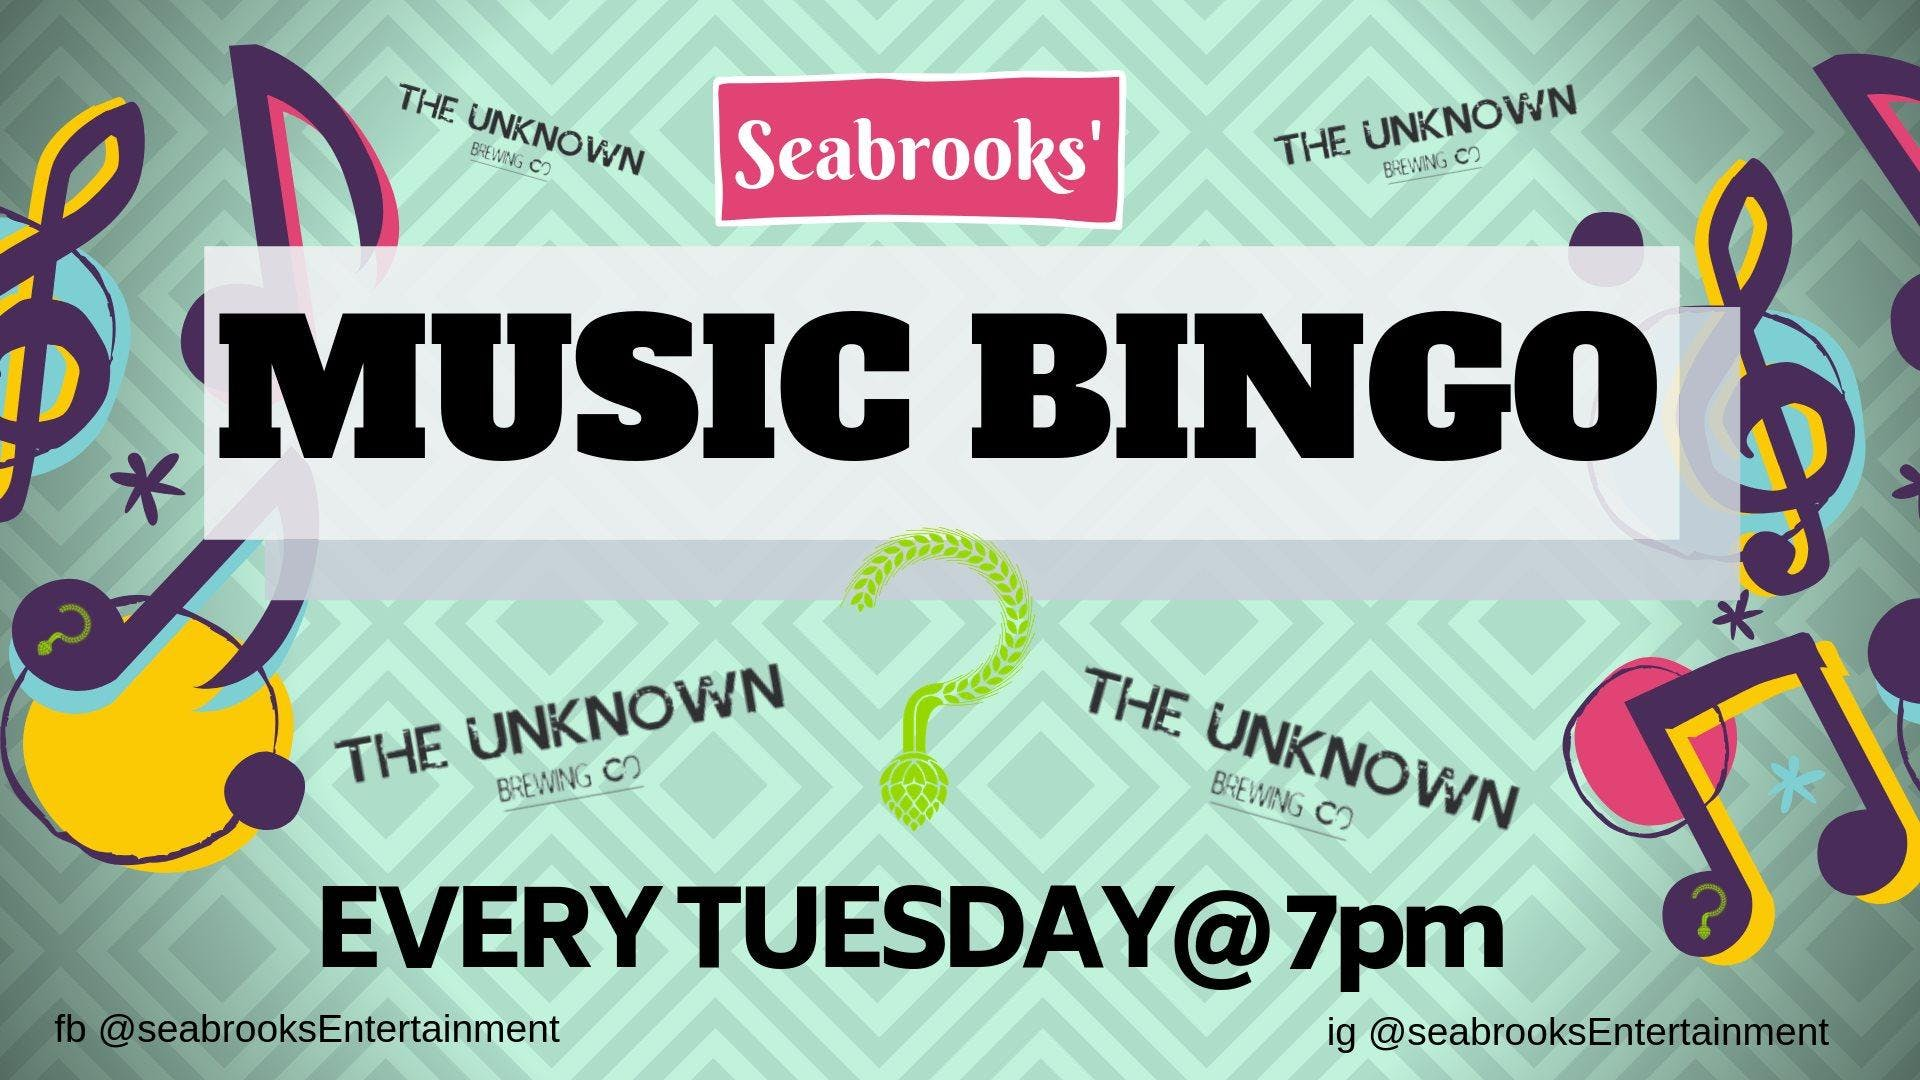 SEABROOKS' MUSIC BINGO! BINGO, BEER, PIZZA AND PRIZES!! UNKNOWN BREWING CO